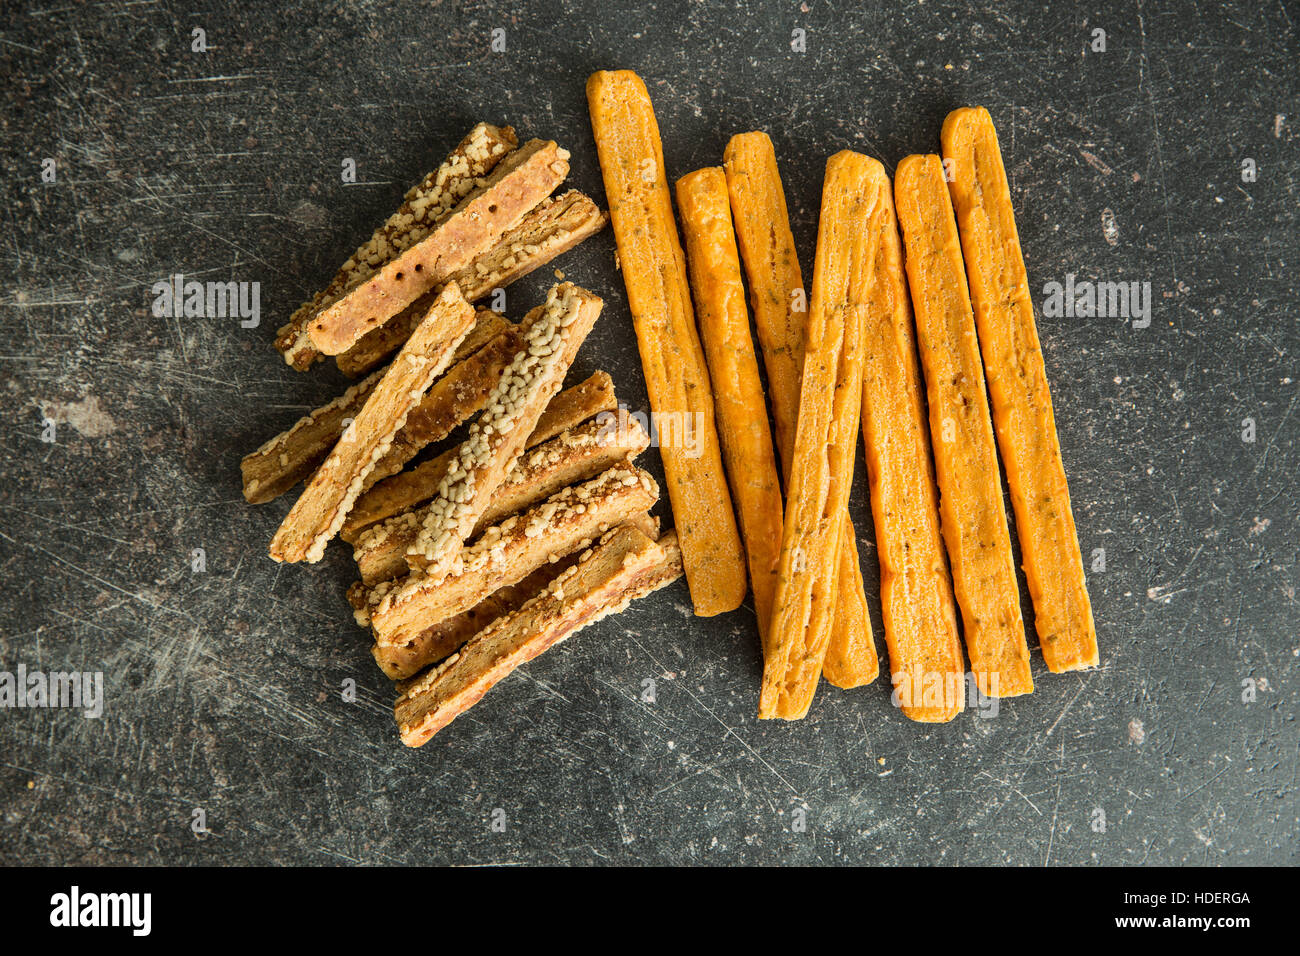 Crispy bread sticks with cheese on old kitchen table. - Stock Image